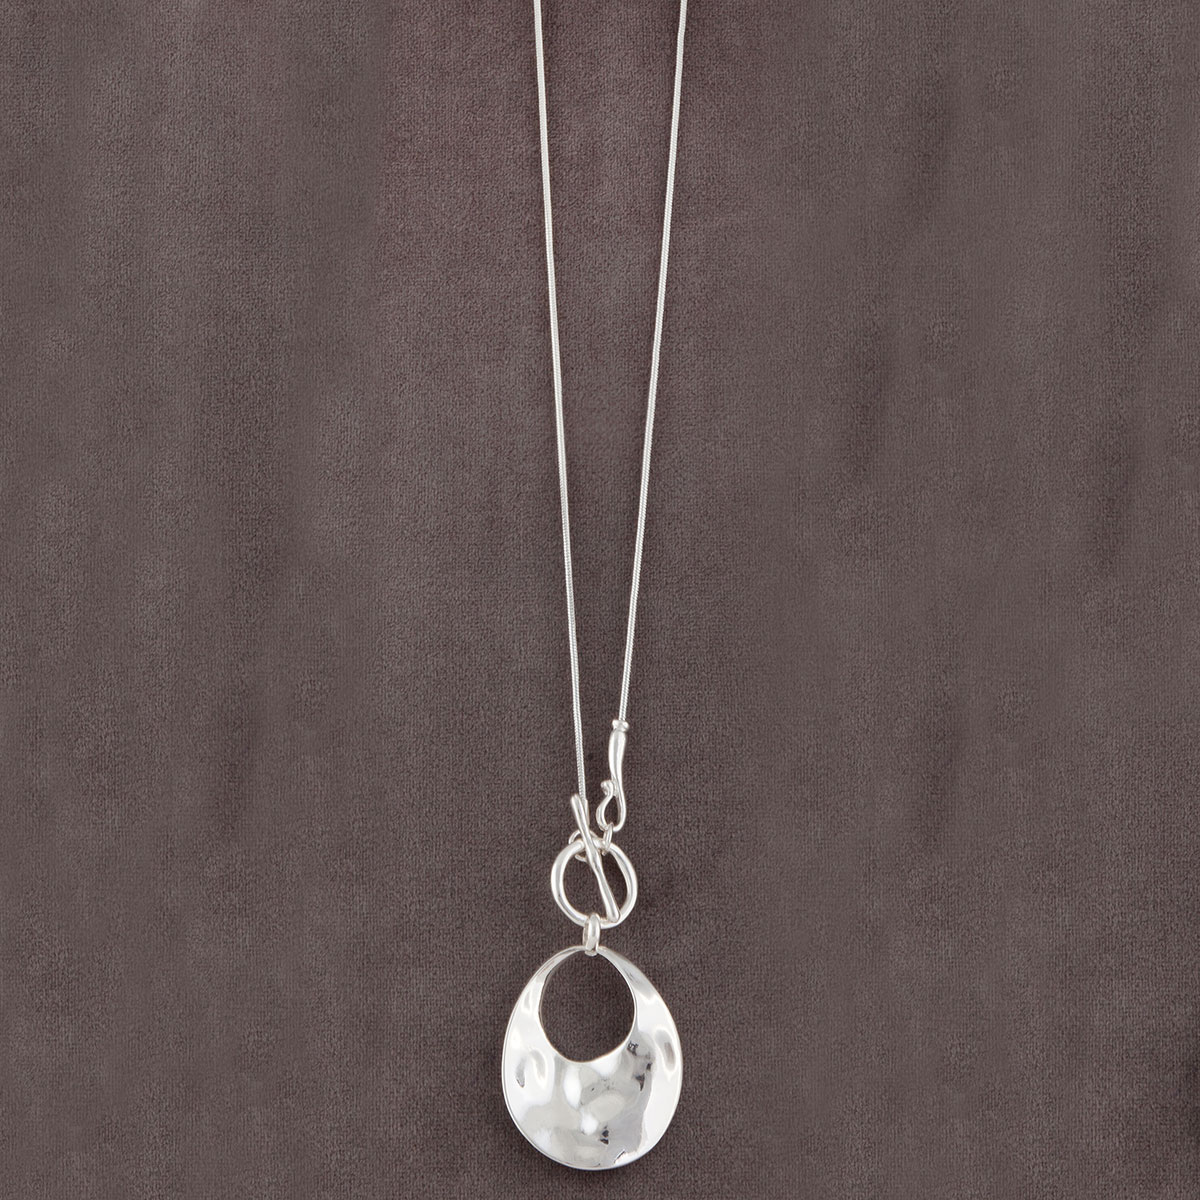 Silver Circle with Front Toggle Clasp on Chain Necklace